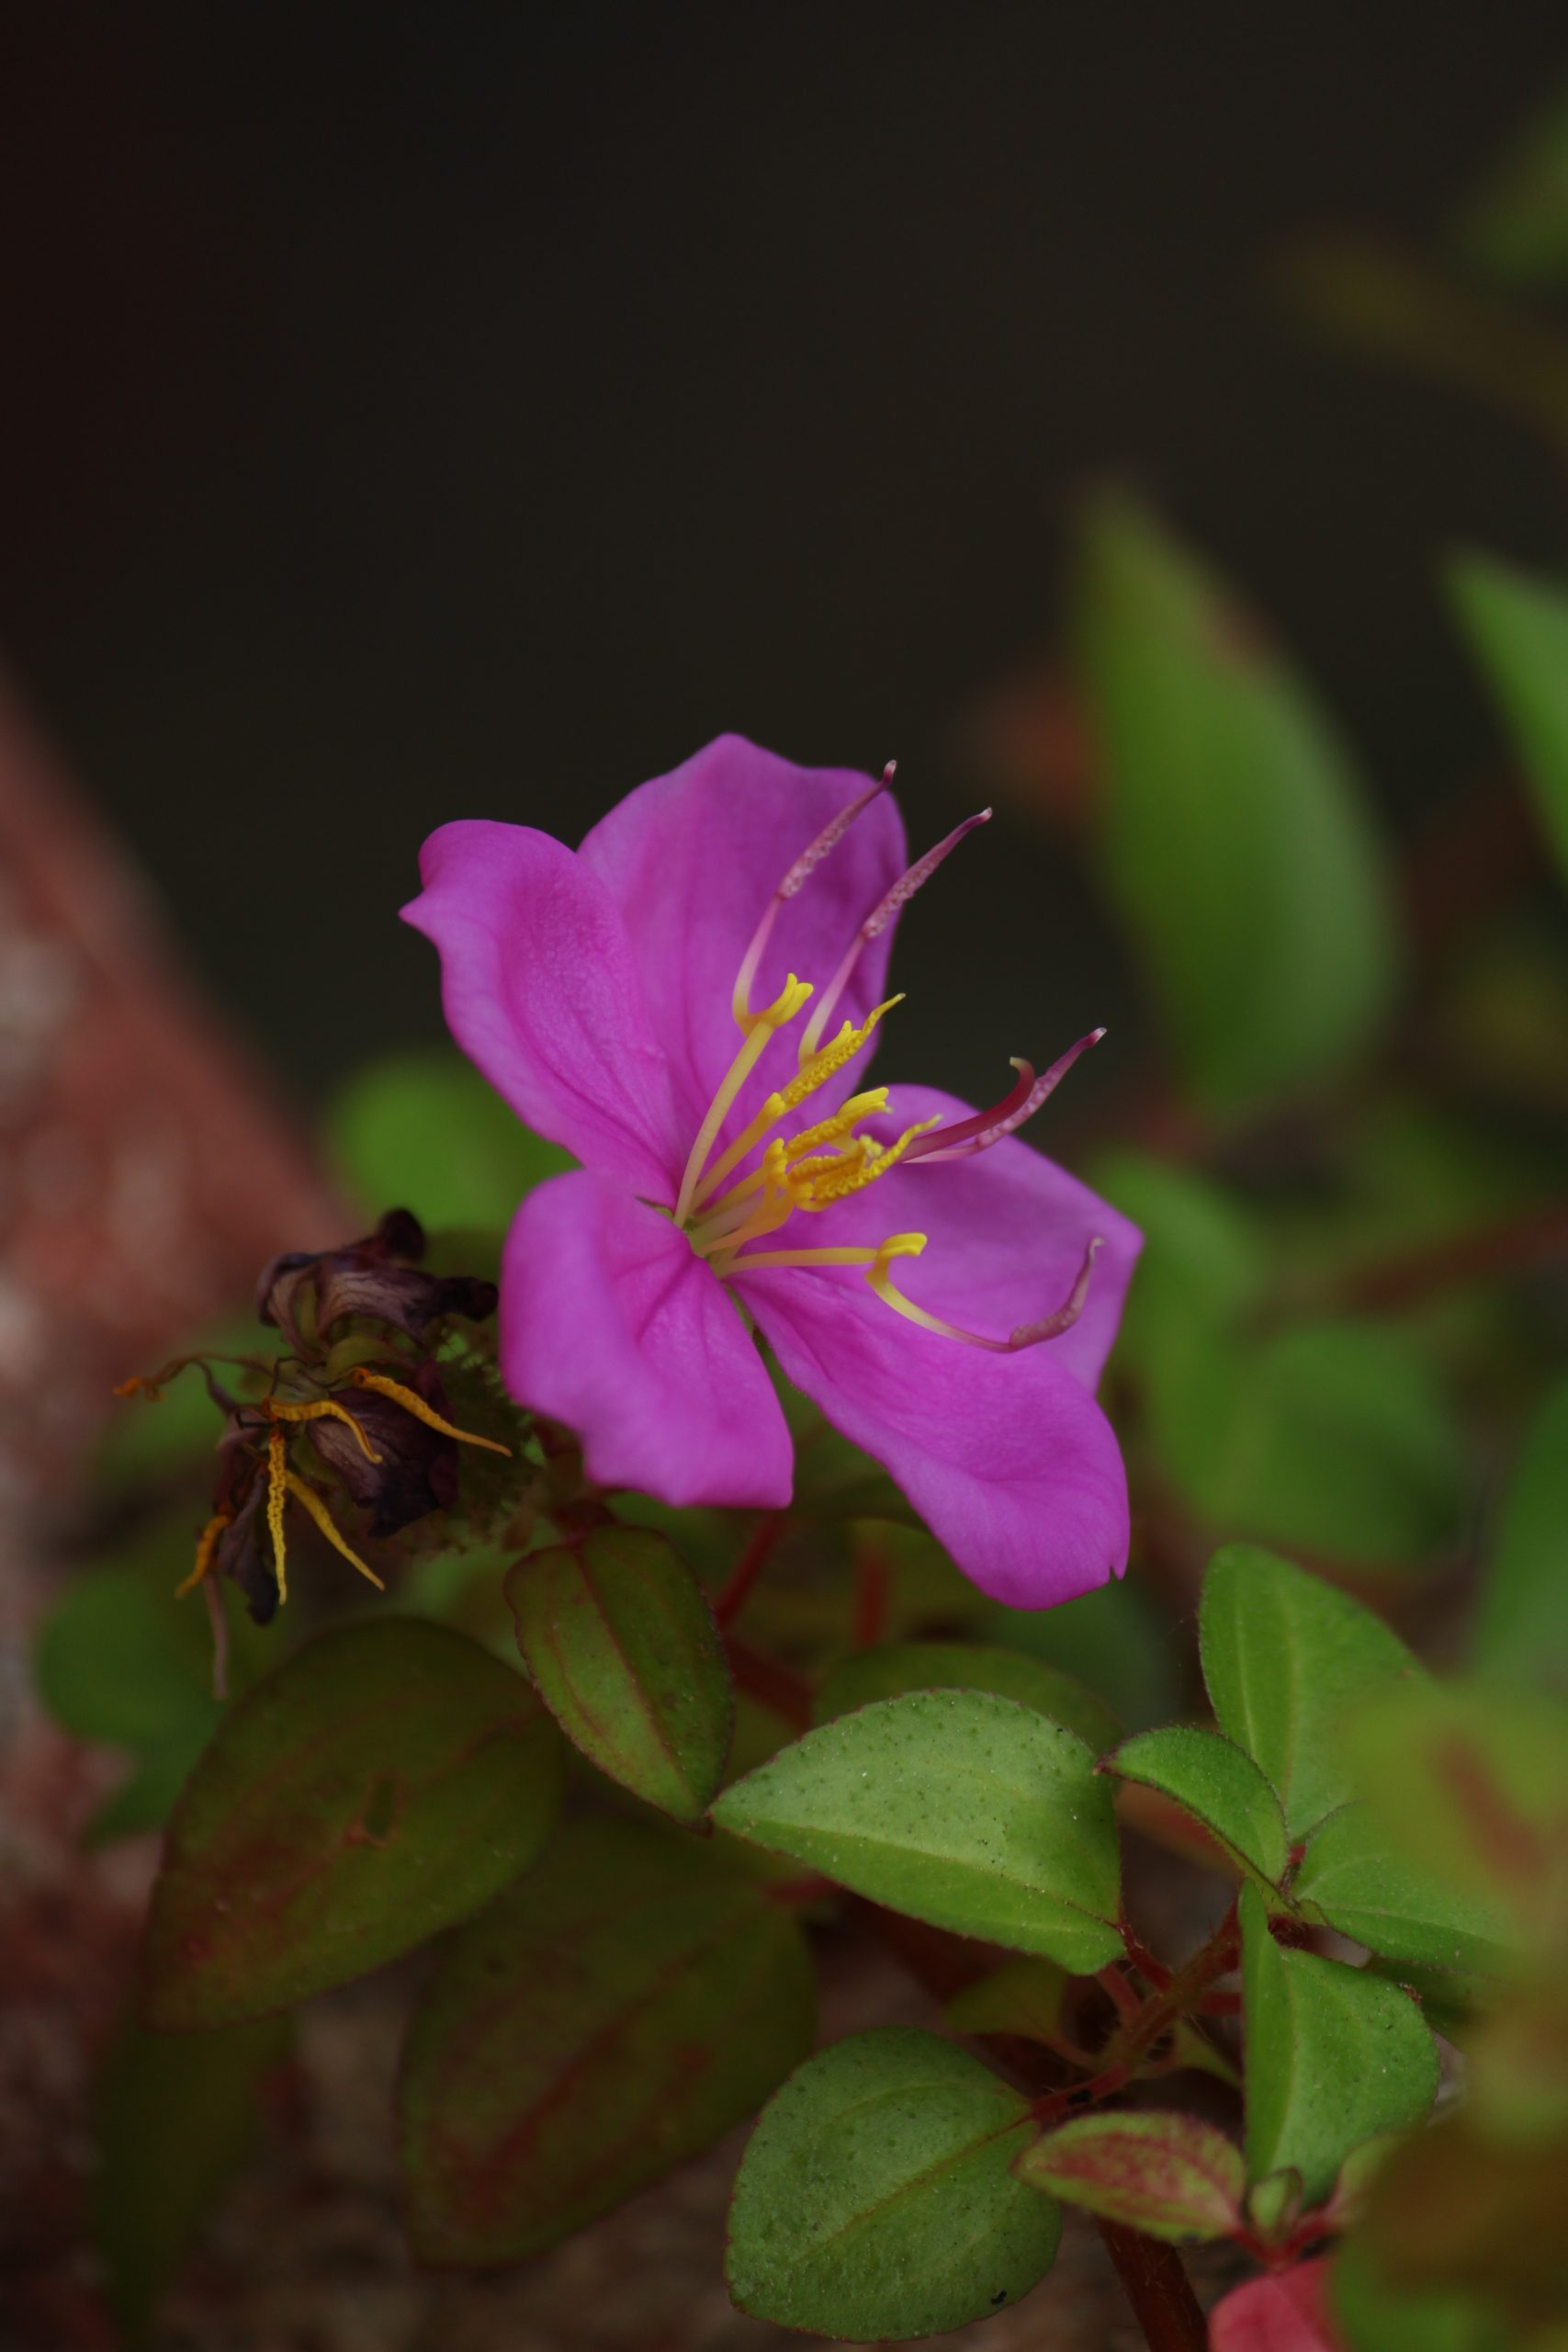 Blooming flower on plant